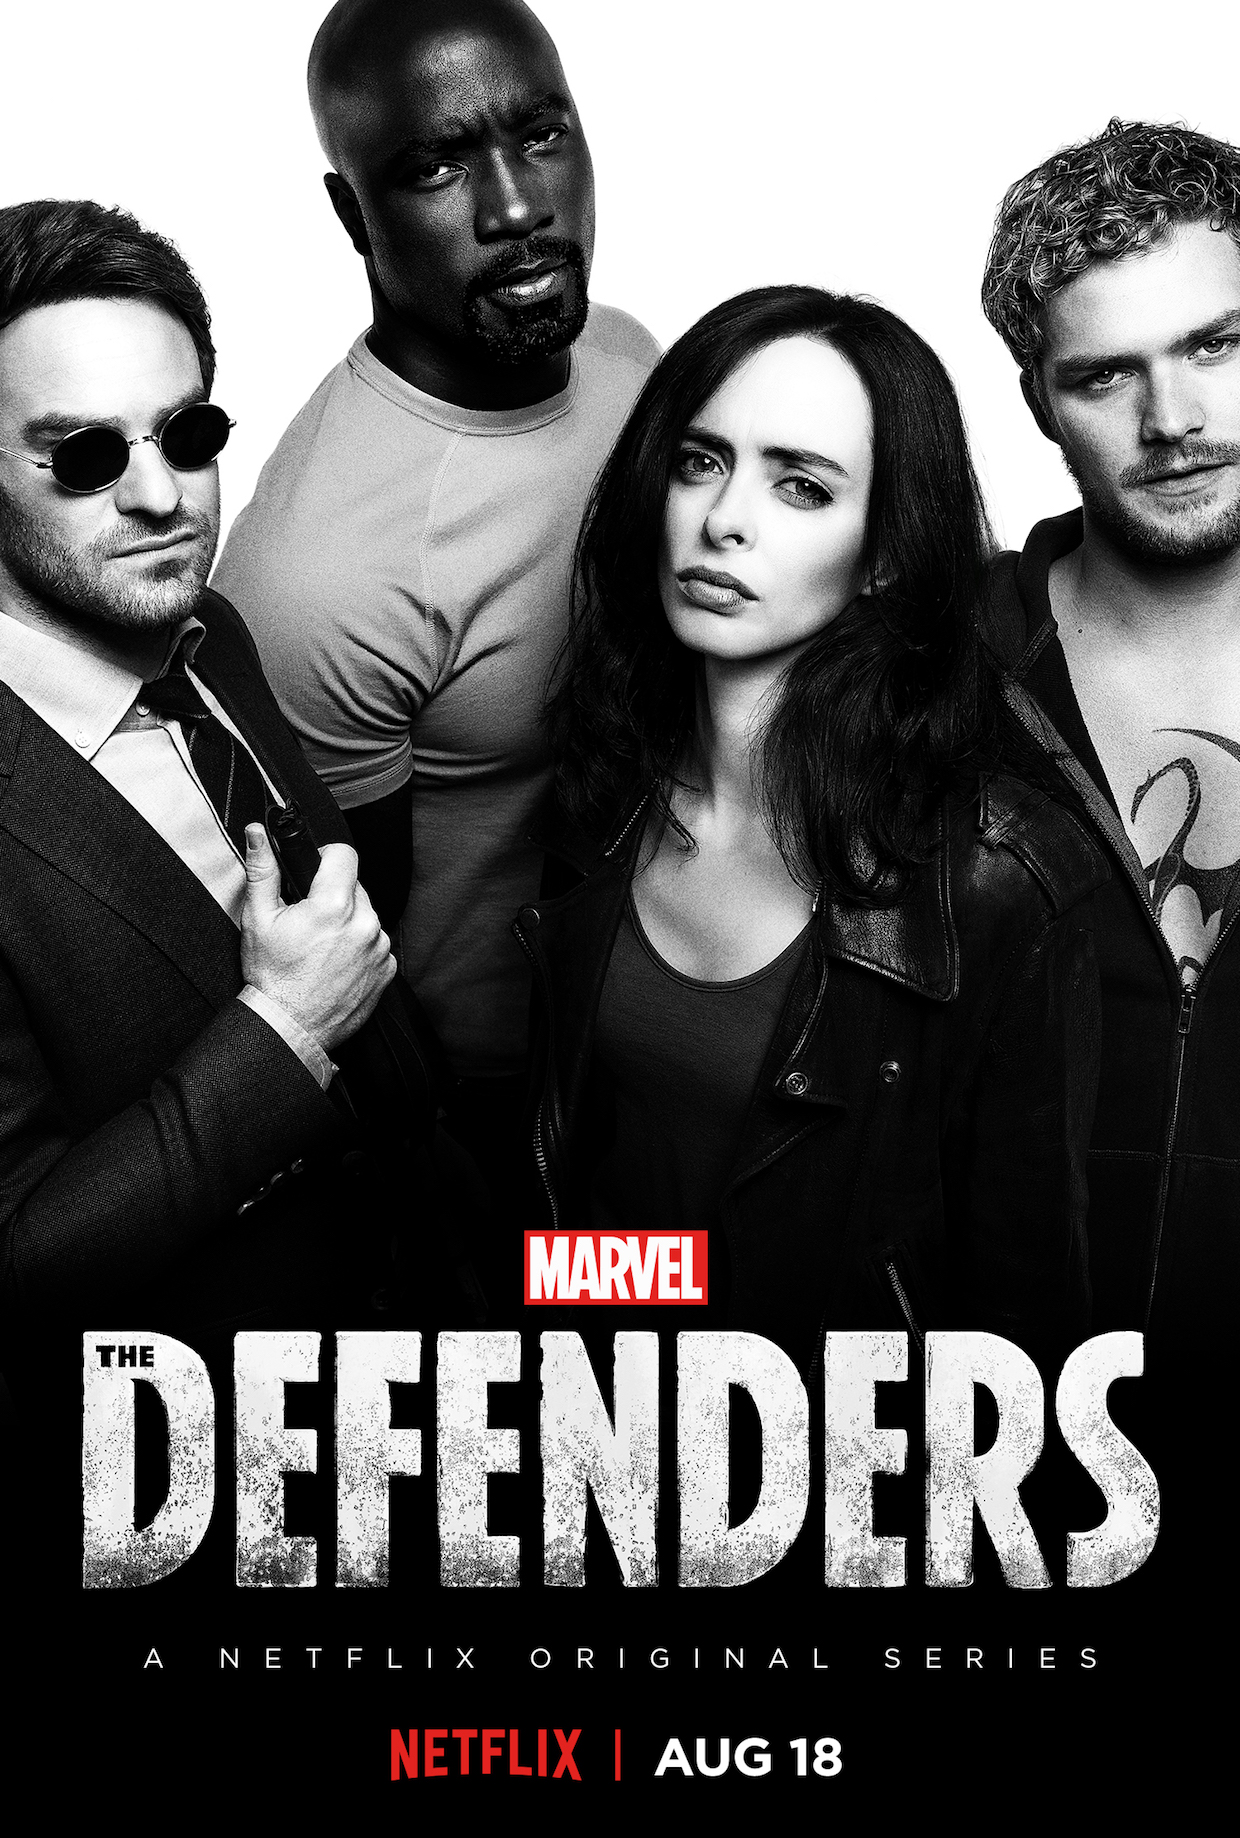 Marvel's The Defenders Netflix Key Art Poster Preview